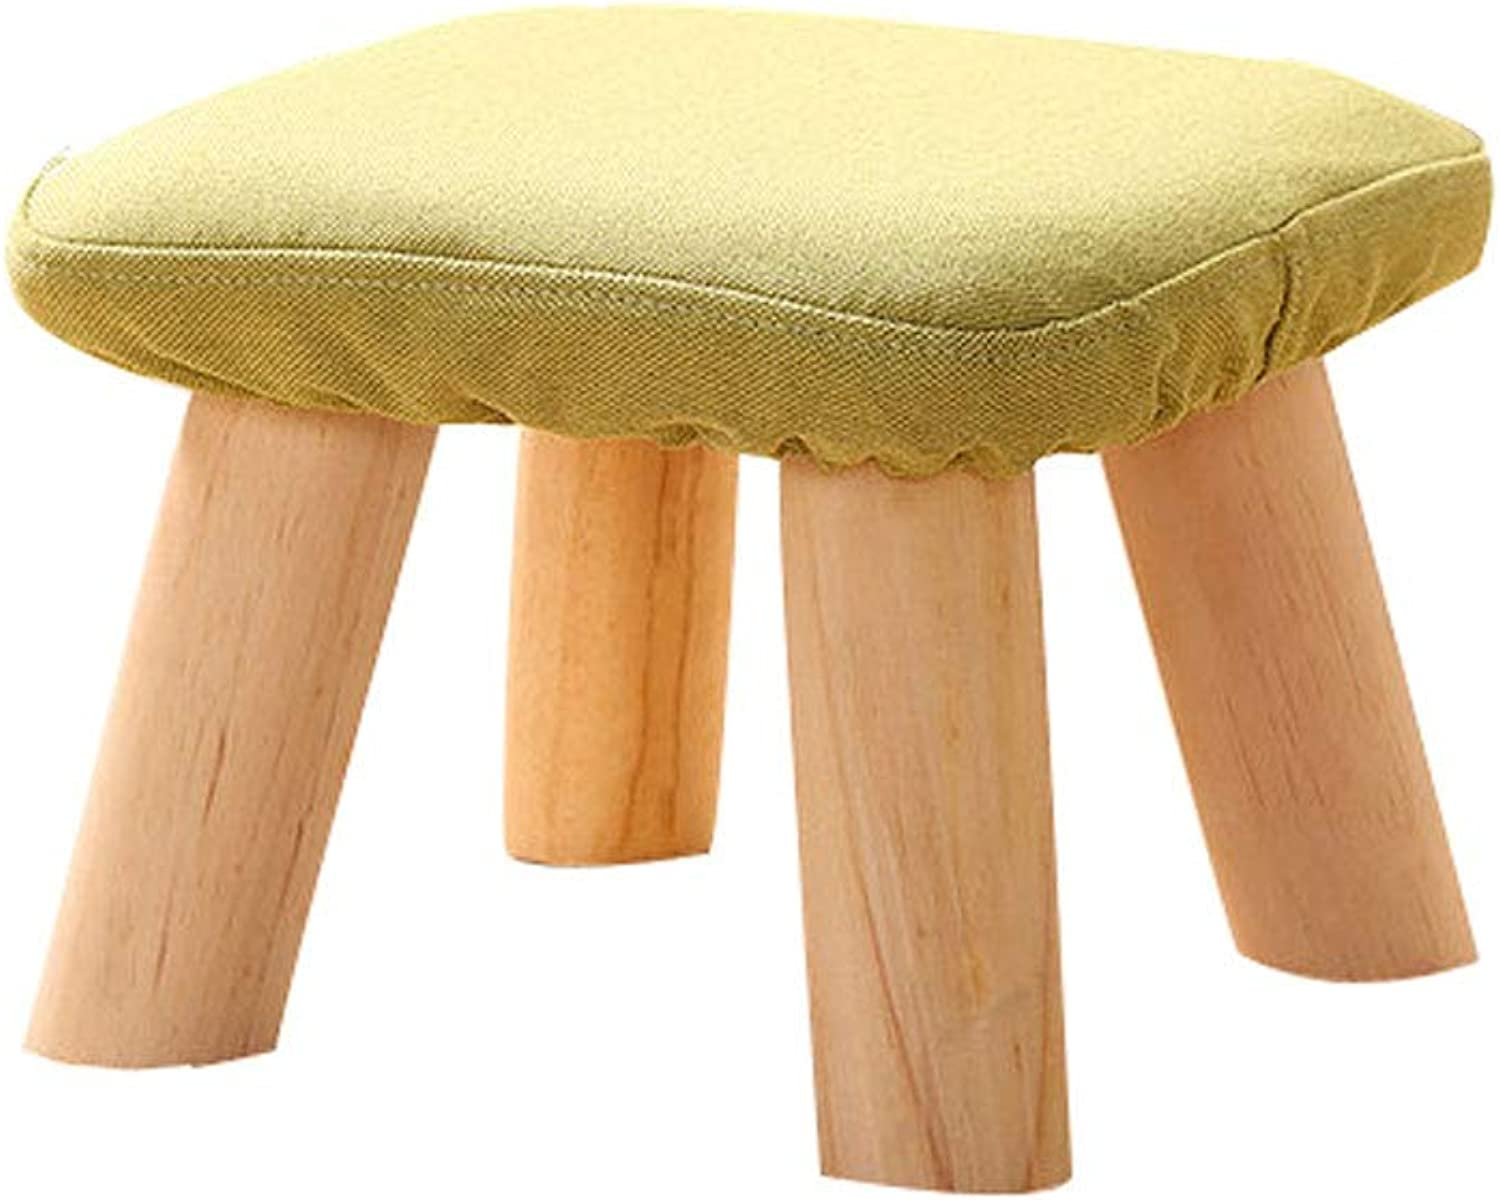 Household Sofa Bench, Removable Washable Stool Cover, Solid Wood Stool Foot, Multi-Purpose Mushroom Stool for Living Room and Bedroom (color   Green)